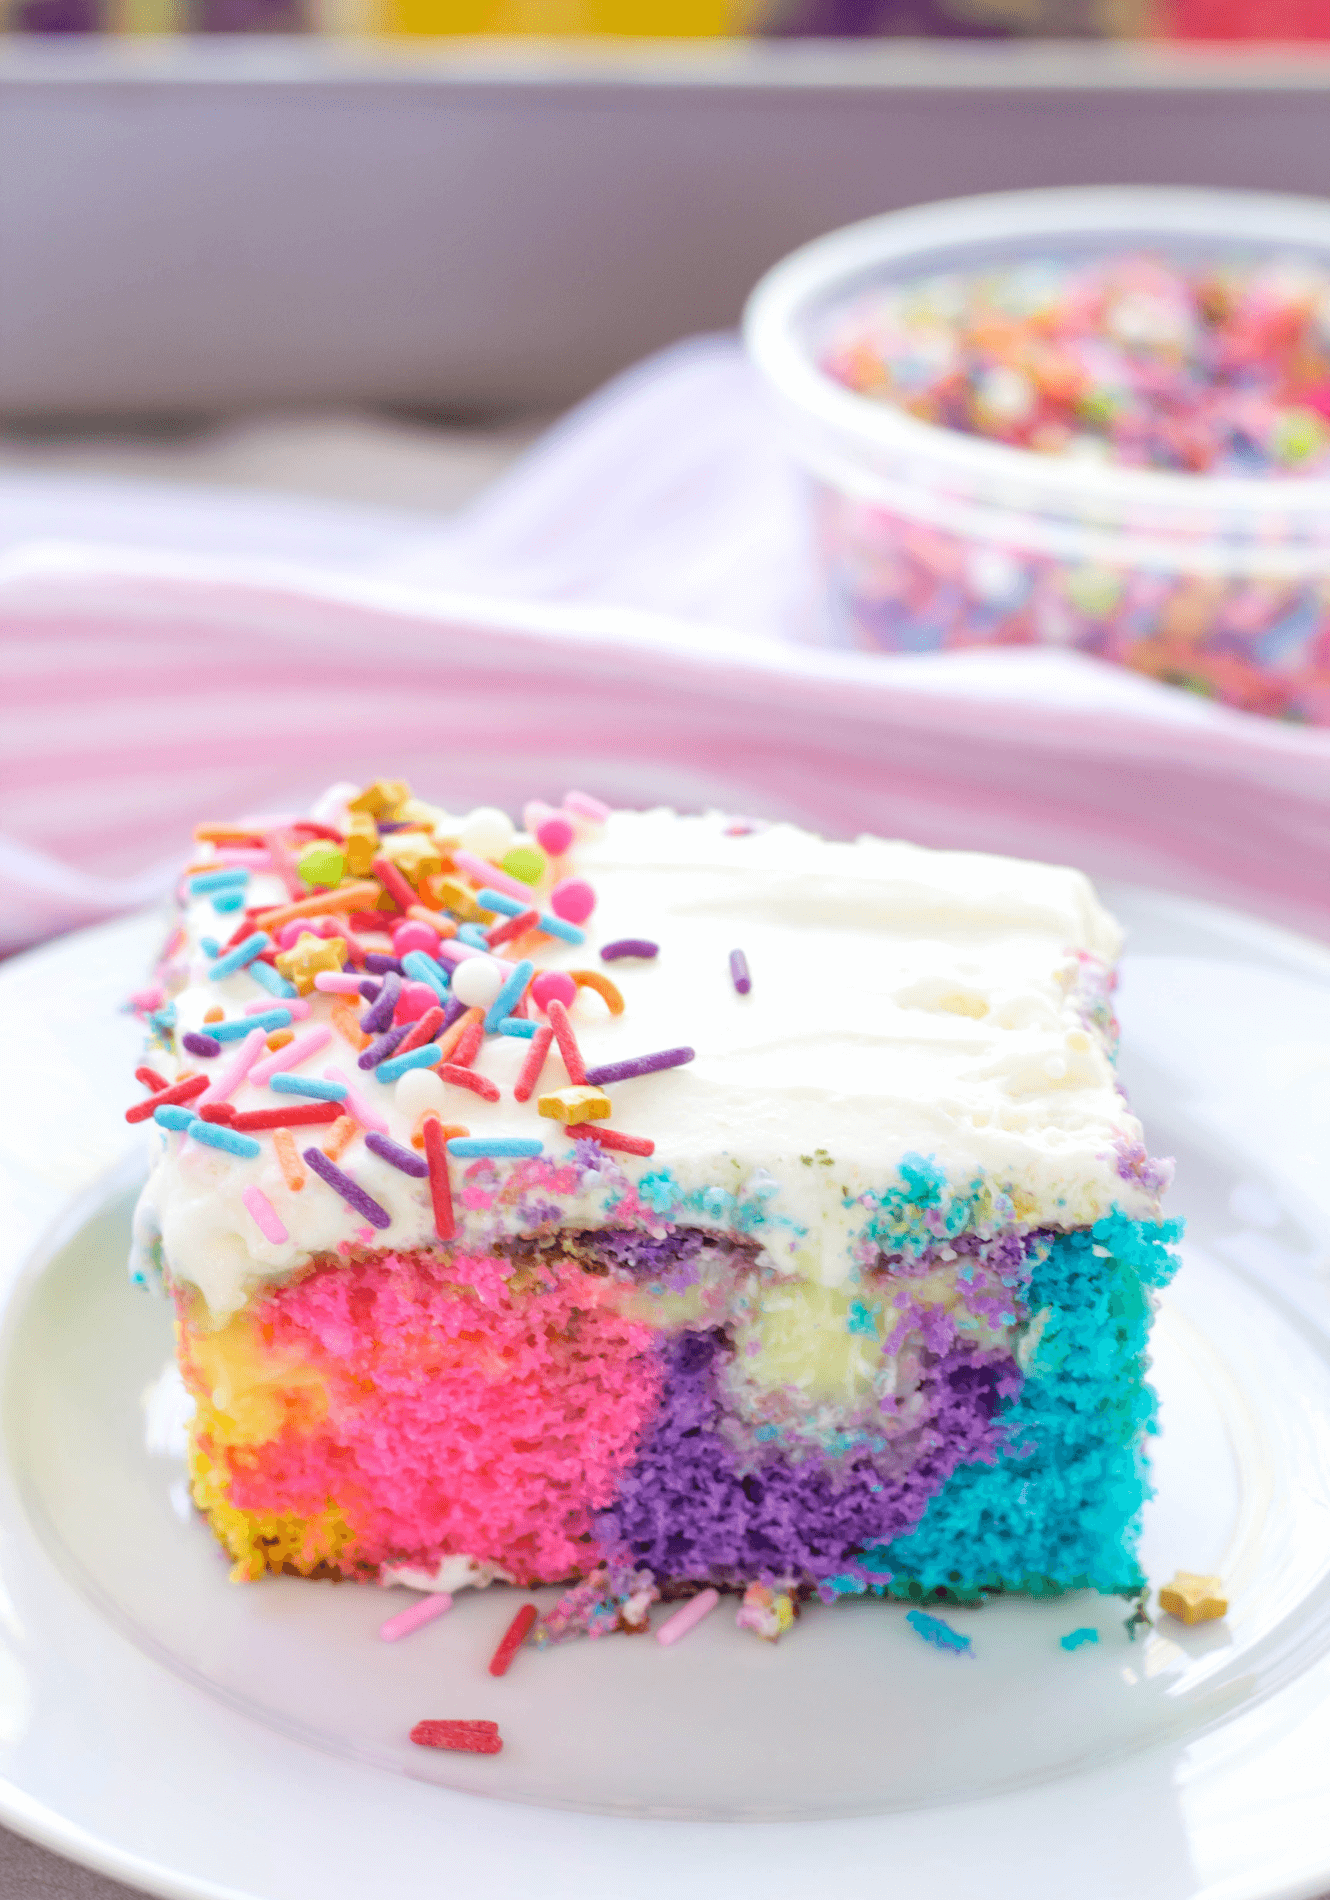 Unicorn Poke Cake, unicorn cake, rainbow cake, poke cake, birthday cake, easy birthday cake, birthday party ideas, fun dessert ideas